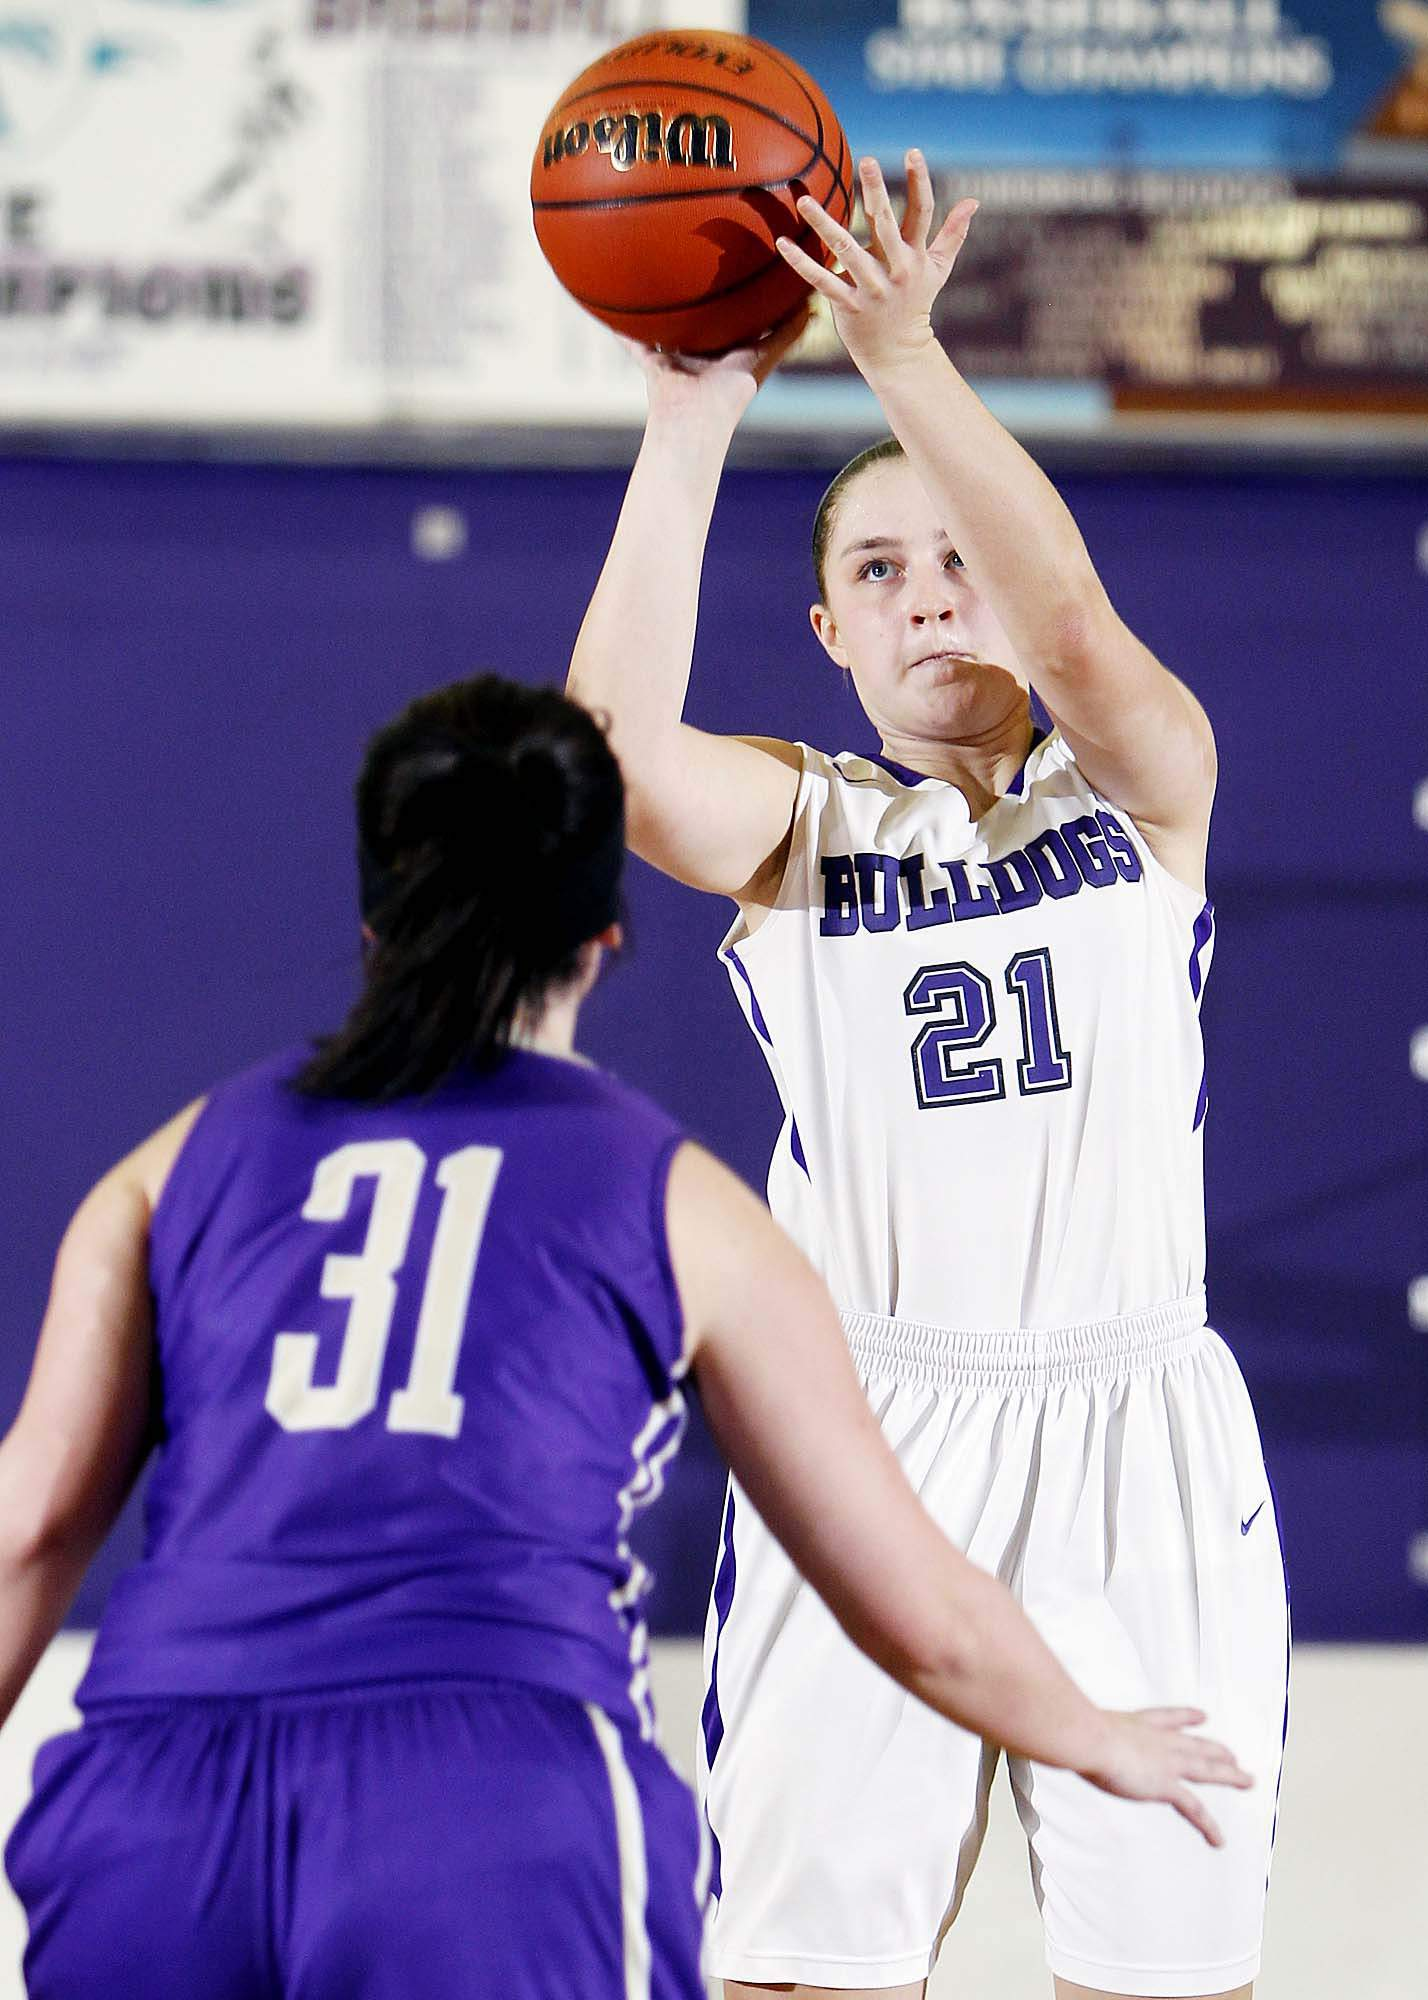 Jess Hopson and the Harrisburg High School girls' basketball team grabbed the top spot in the first Associated Press girls' basketball poll